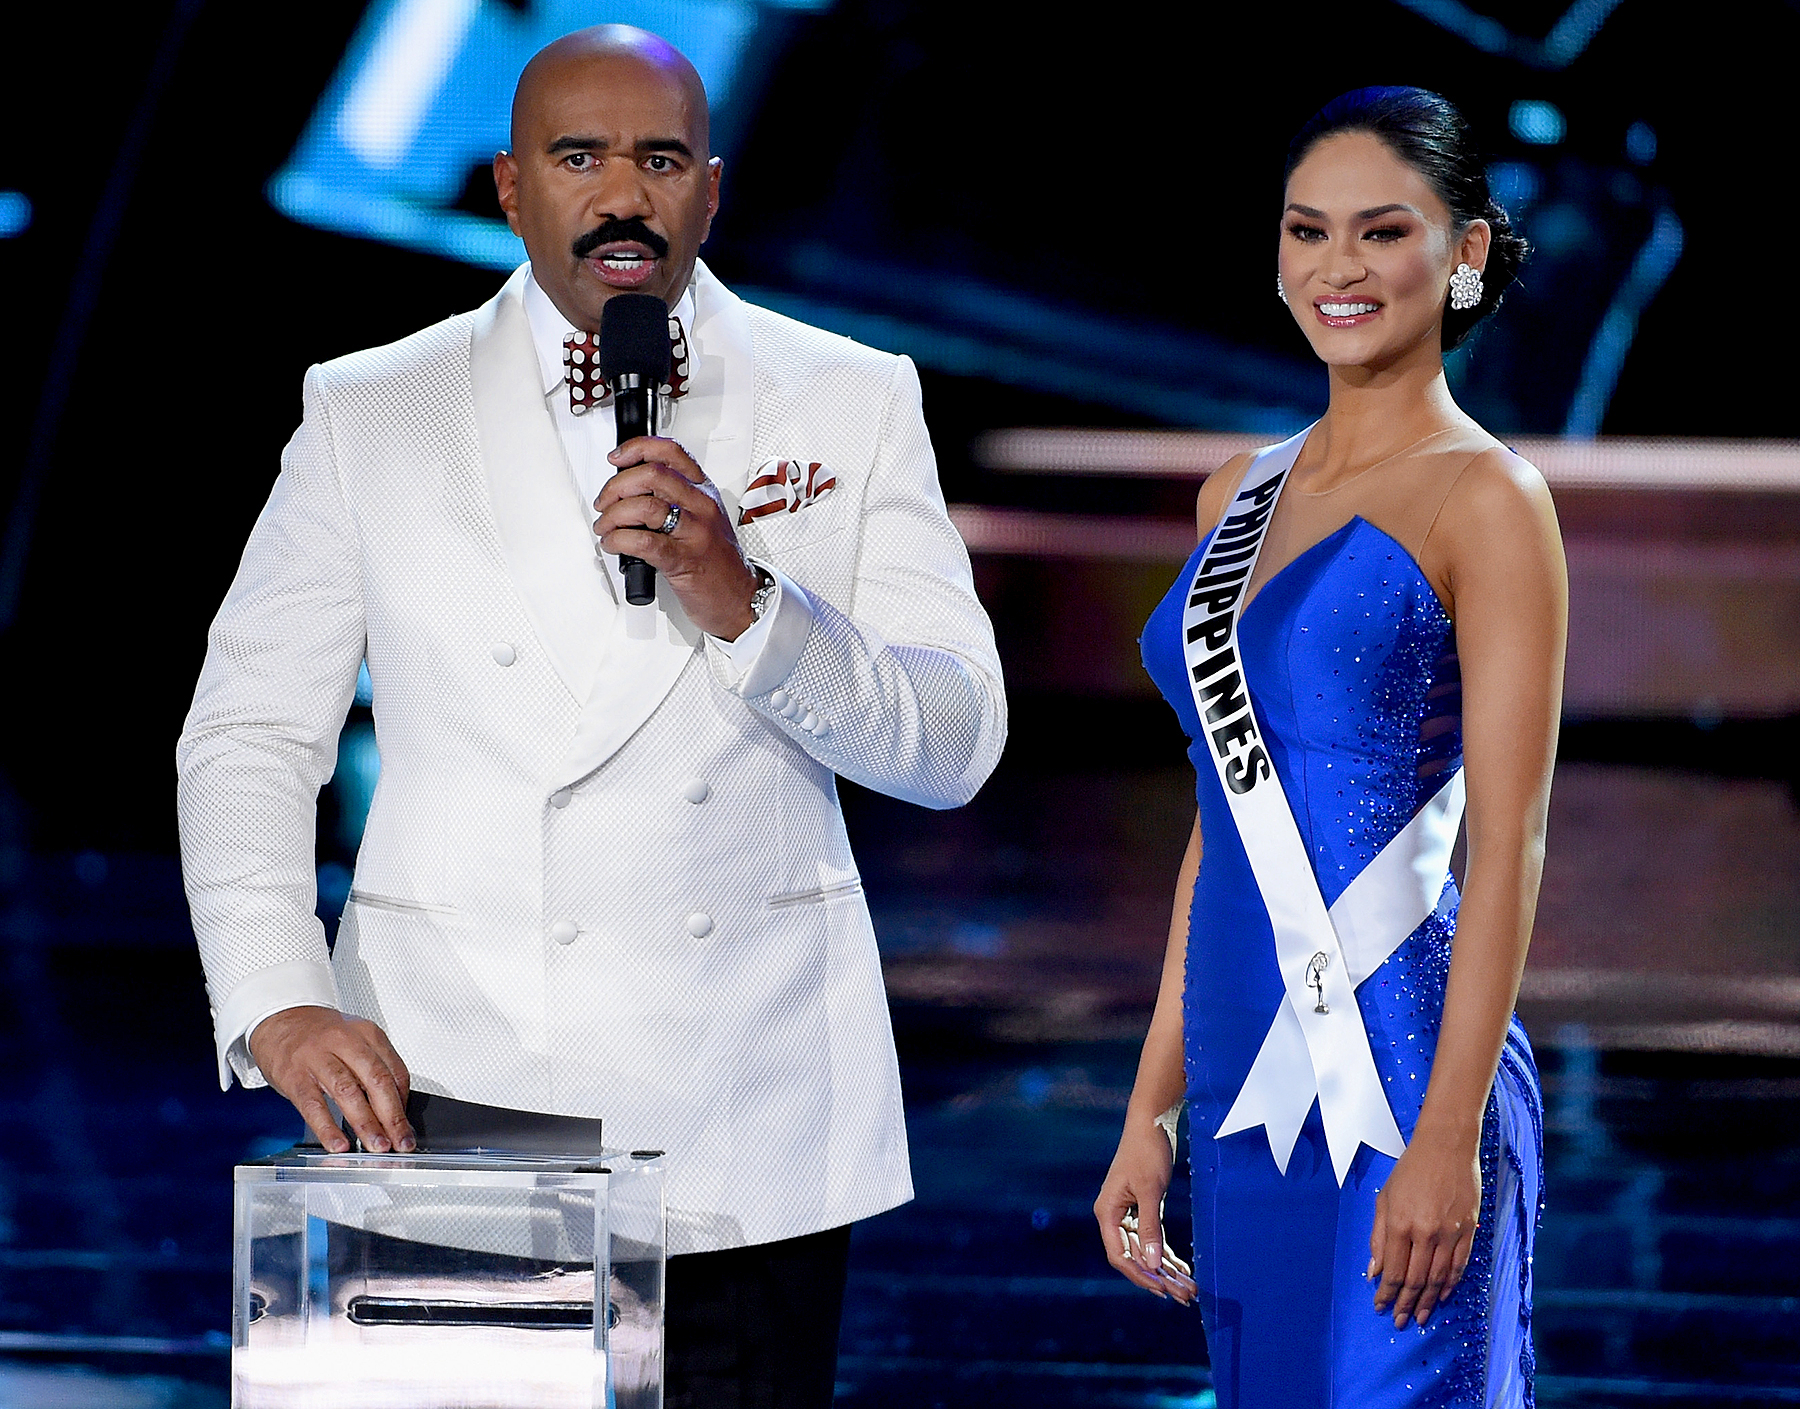 Host Steve Harvey (L) asks Miss Philippines 2015, Pia Alonzo Wurtzbach, a question during the interview portion of the 2015 Miss Universe Pageant at The Axis at Planet Hollywood Resort & Casino on December 20, 2015 in Las Vegas, Nevada.